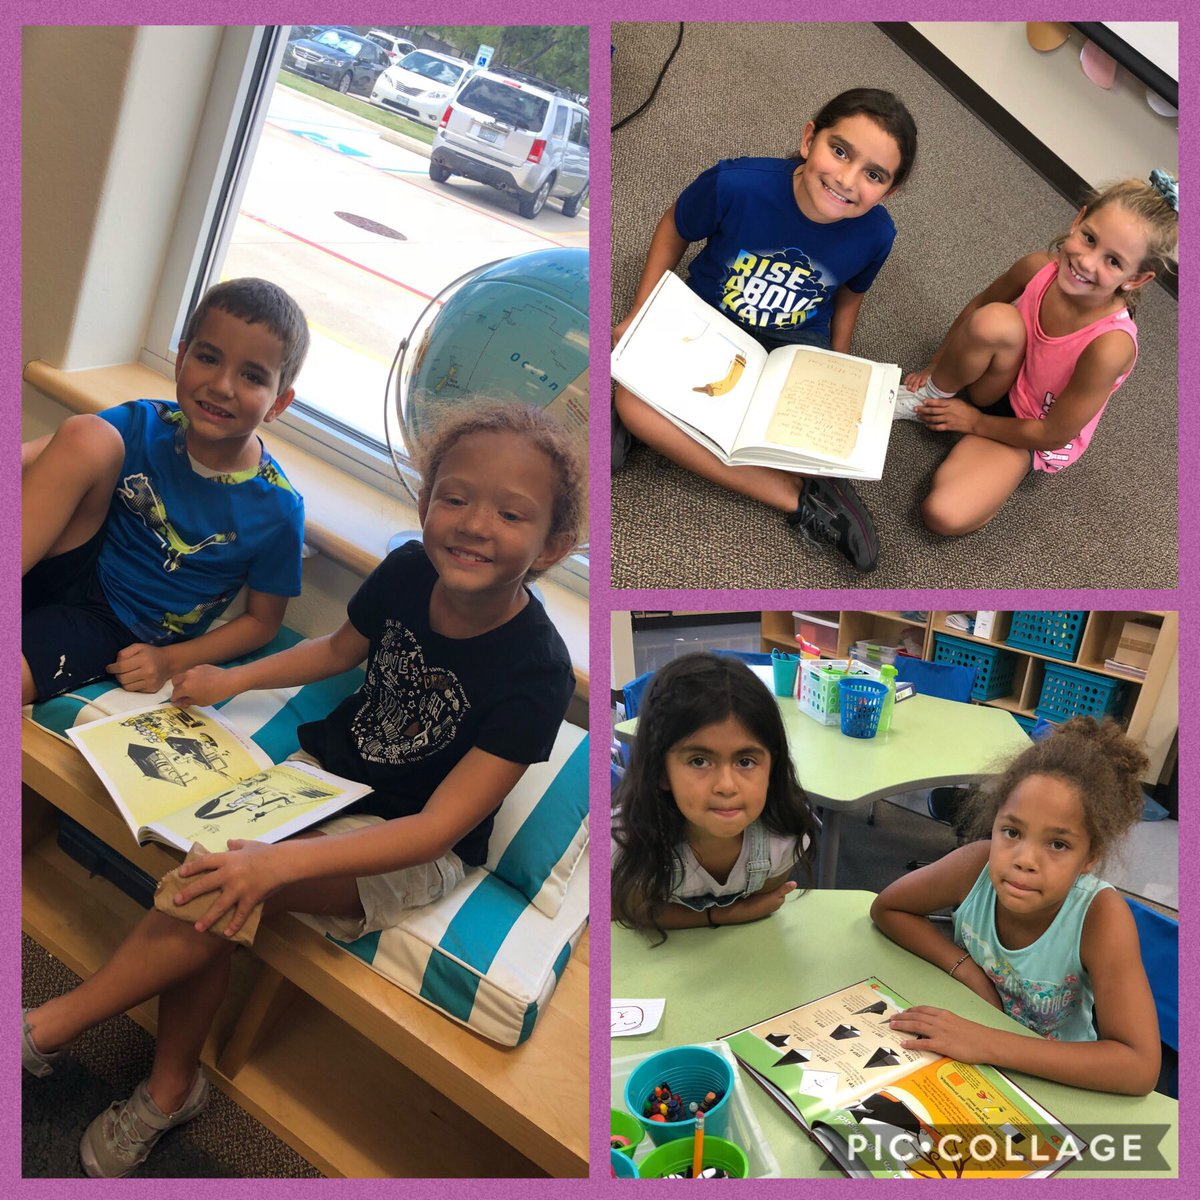 We had a great time reading with our 4th grade buddies. #2ndgradelife #flearning #leadReed@mlopezchappuis @Reed_Elem<br>http://pic.twitter.com/DXXh8dAqym